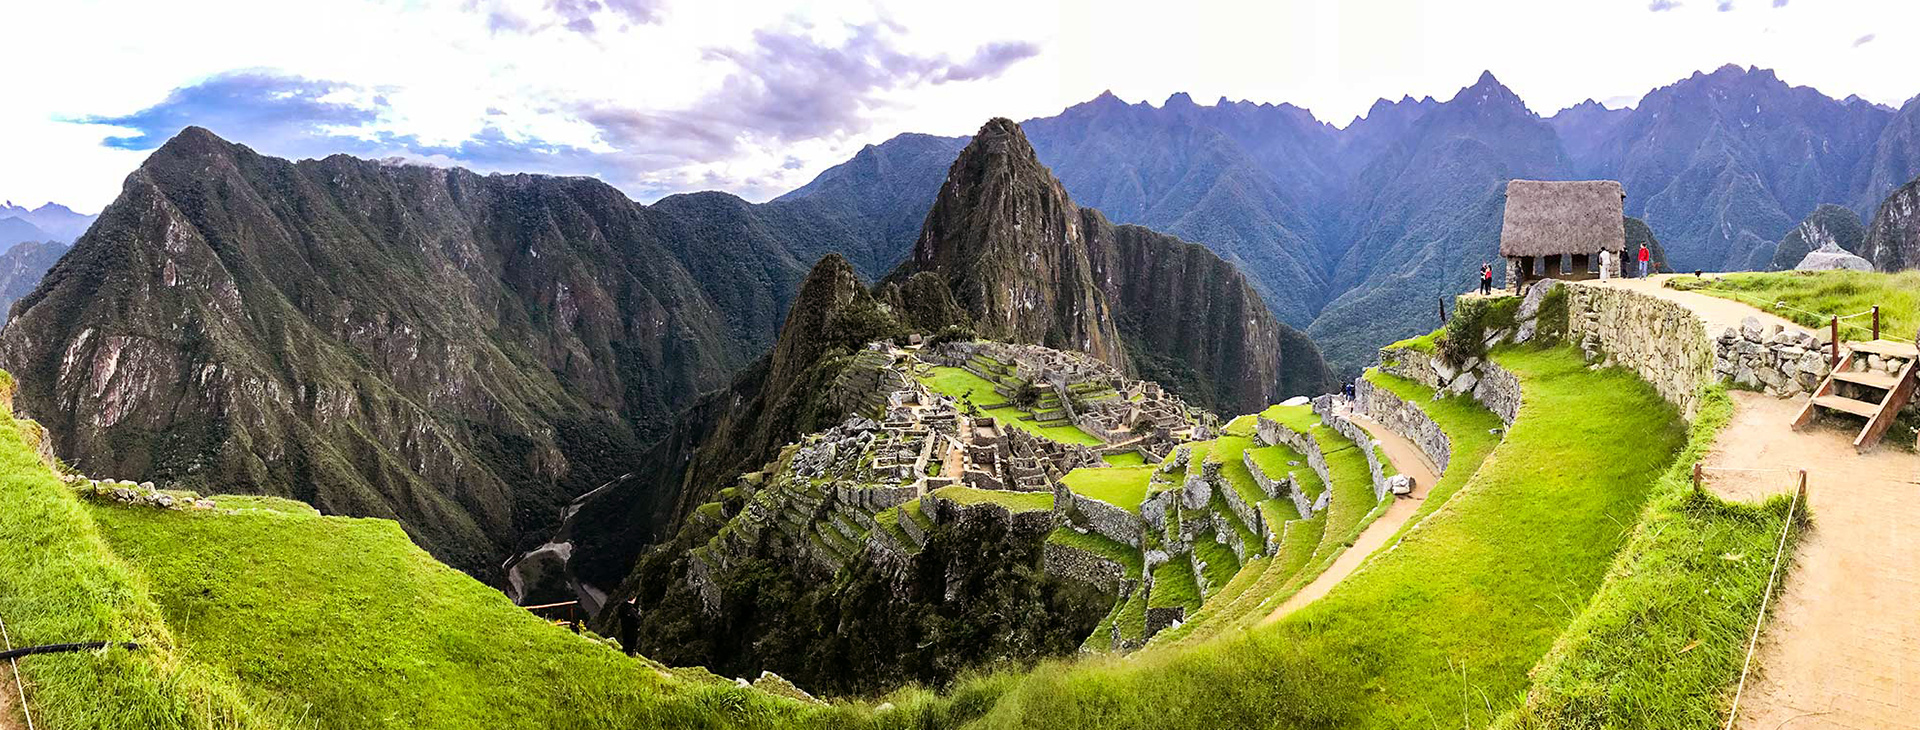 Travel Package – Tours Machu Picchu Panoramico 3days - TOURS PERU MACHU PICCHU